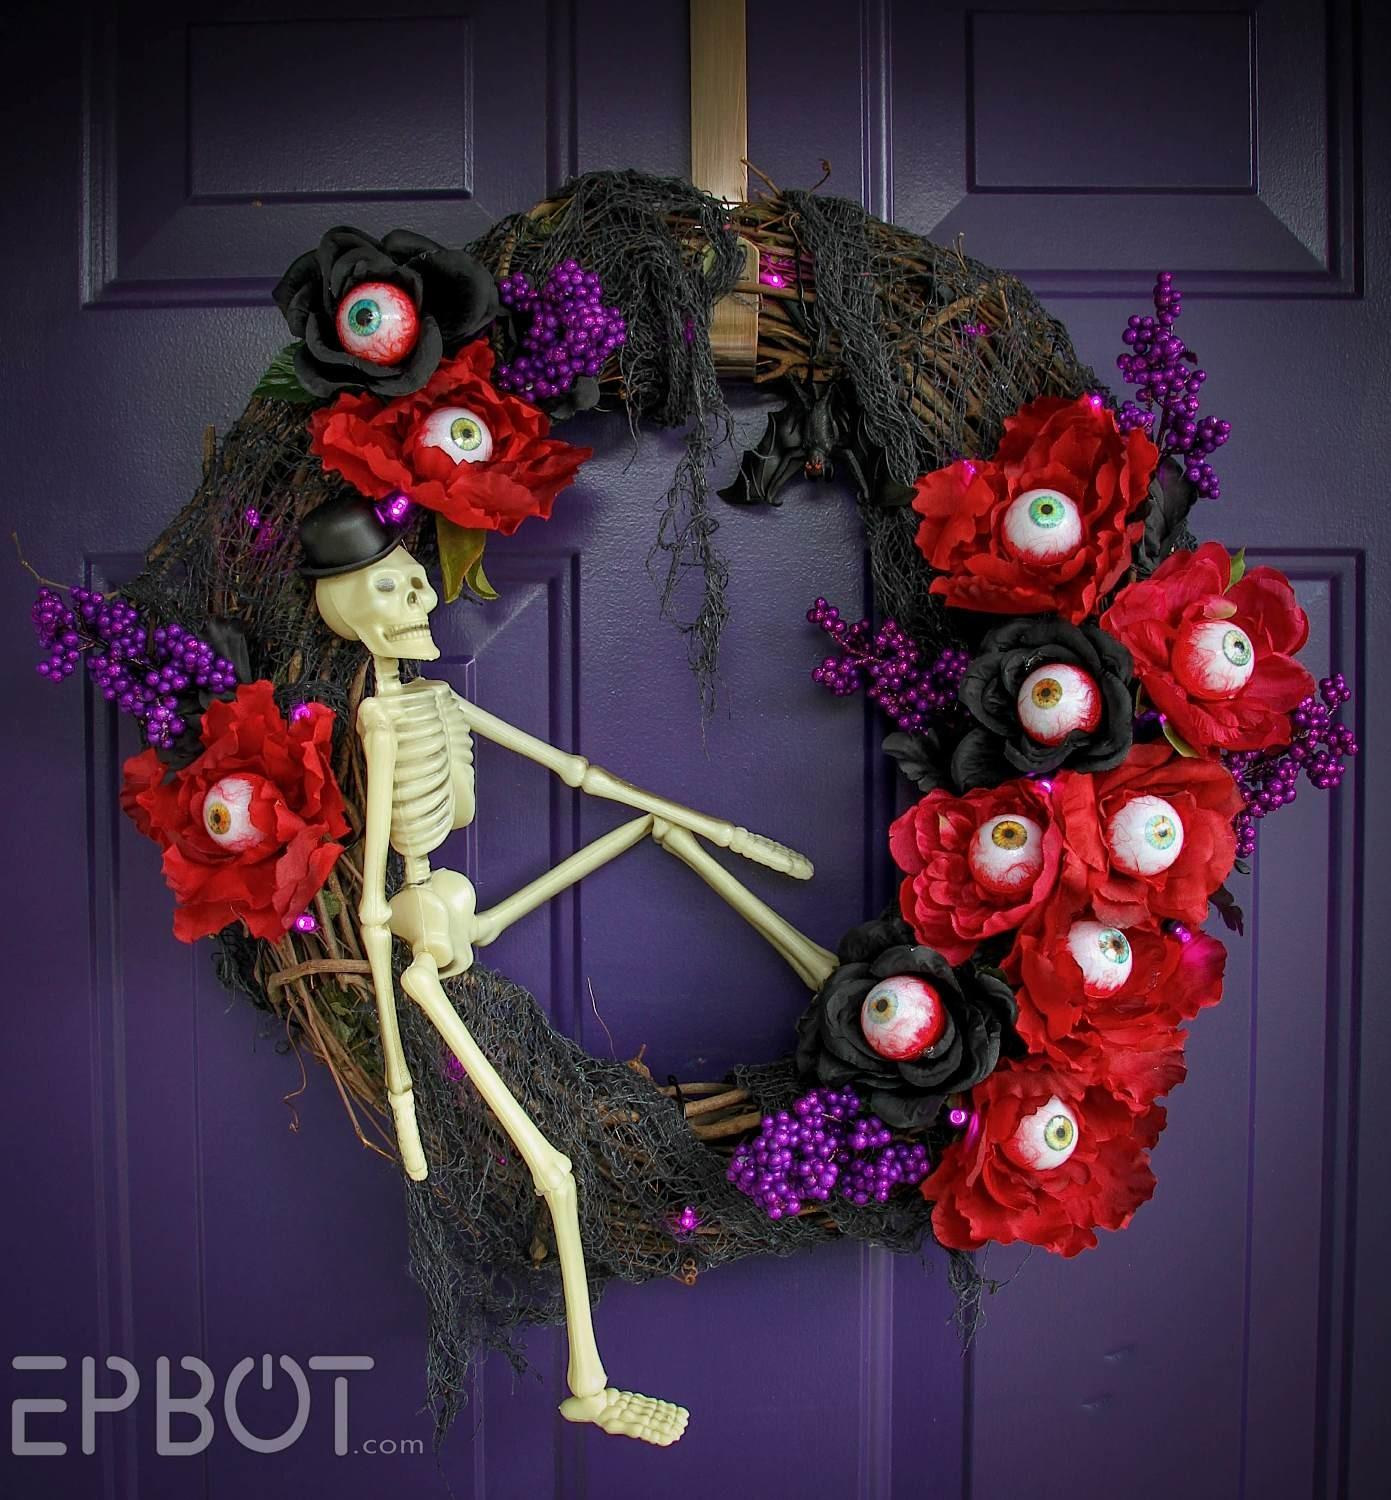 Epbot Got Eyes Halloween Wreath Diy